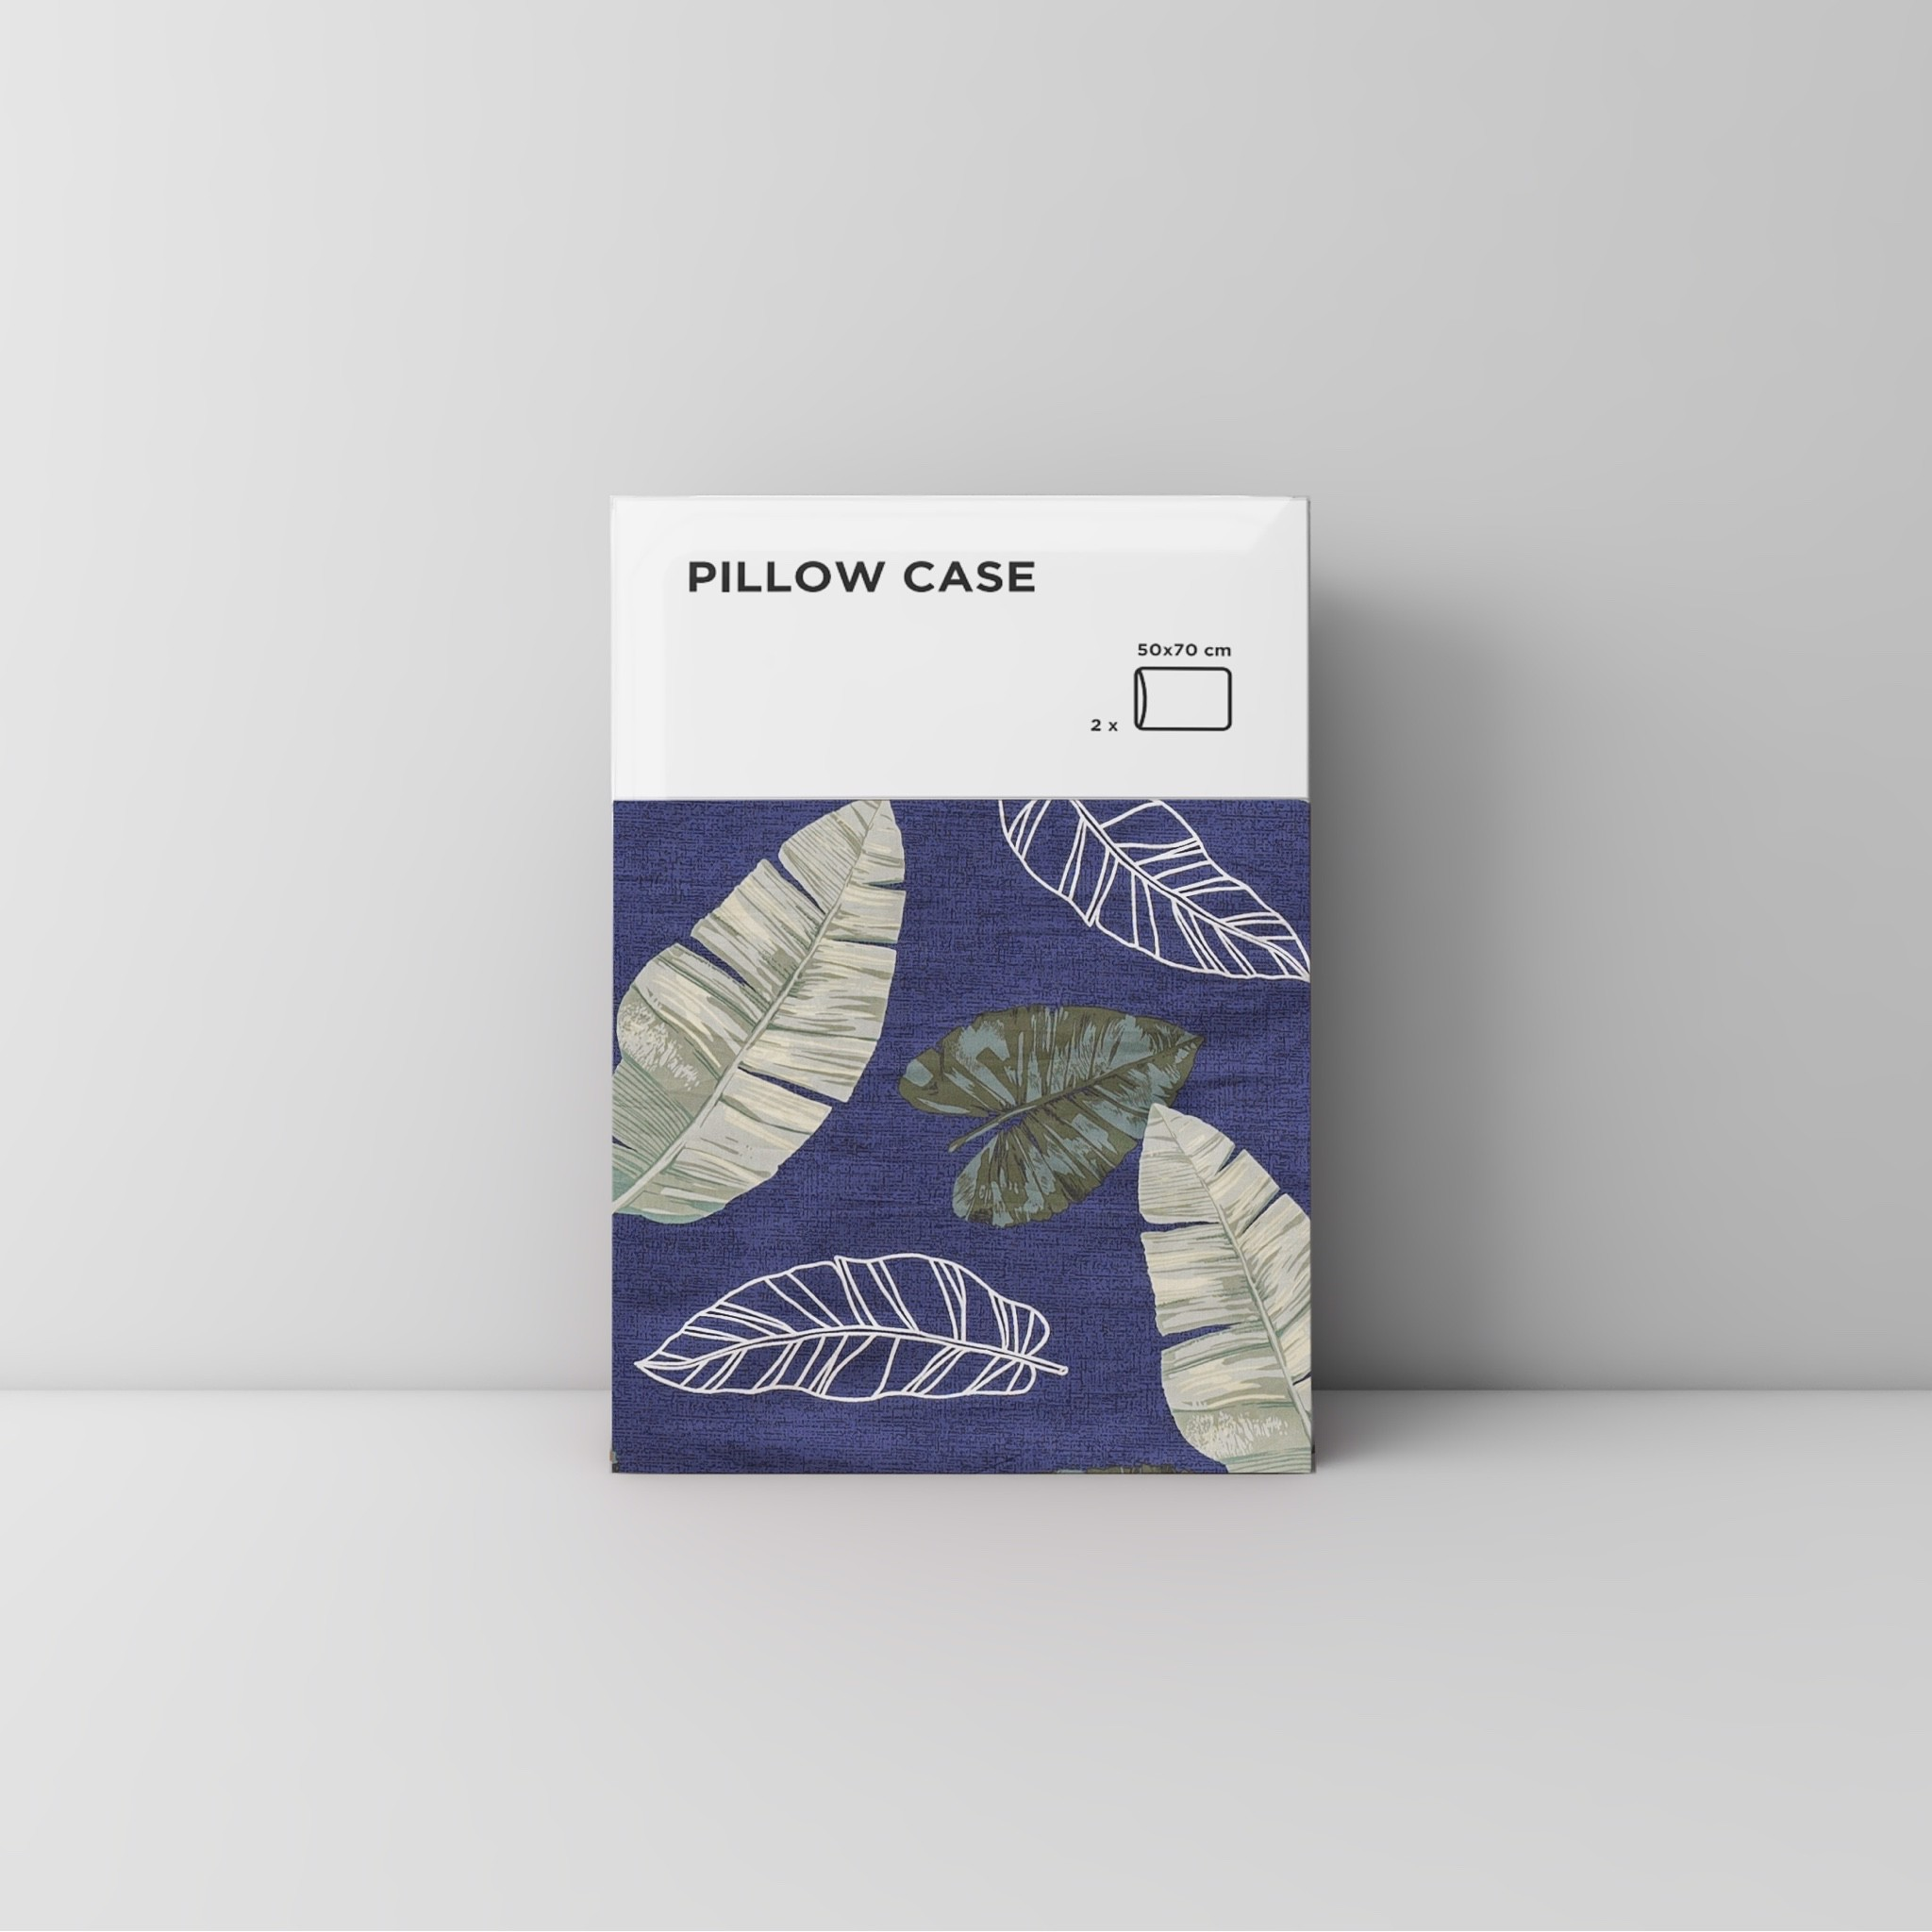 Pillow case 104 Leaf on navy blue